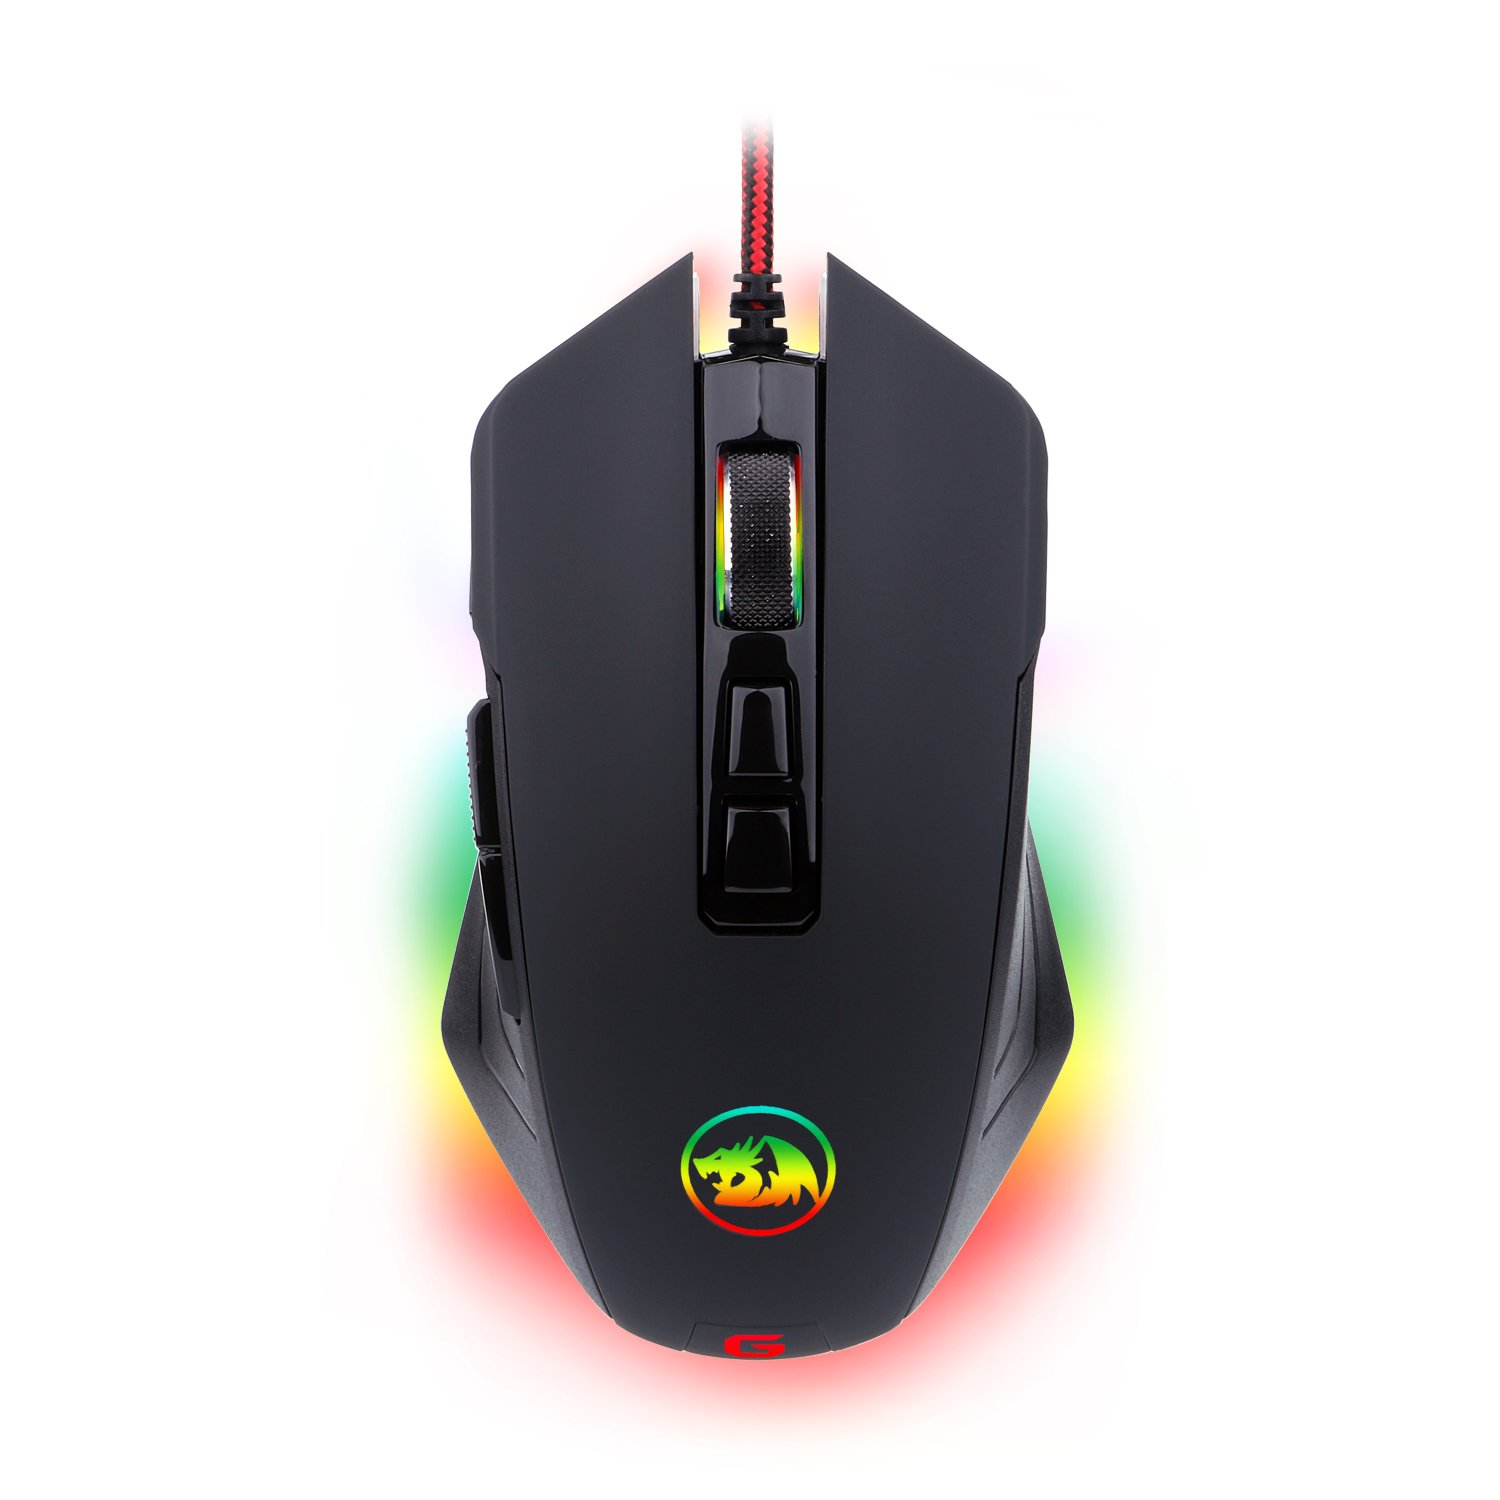 Gaming Mouse RGB LED Backlit Wired MMO PC Gaming Mouse M715-RGB Dagger by Redragon, Ergonomic High-Precision Programmable Gaming Mouse with 7 RGB Backlight Modes up to 10000 DPI User Adjustable